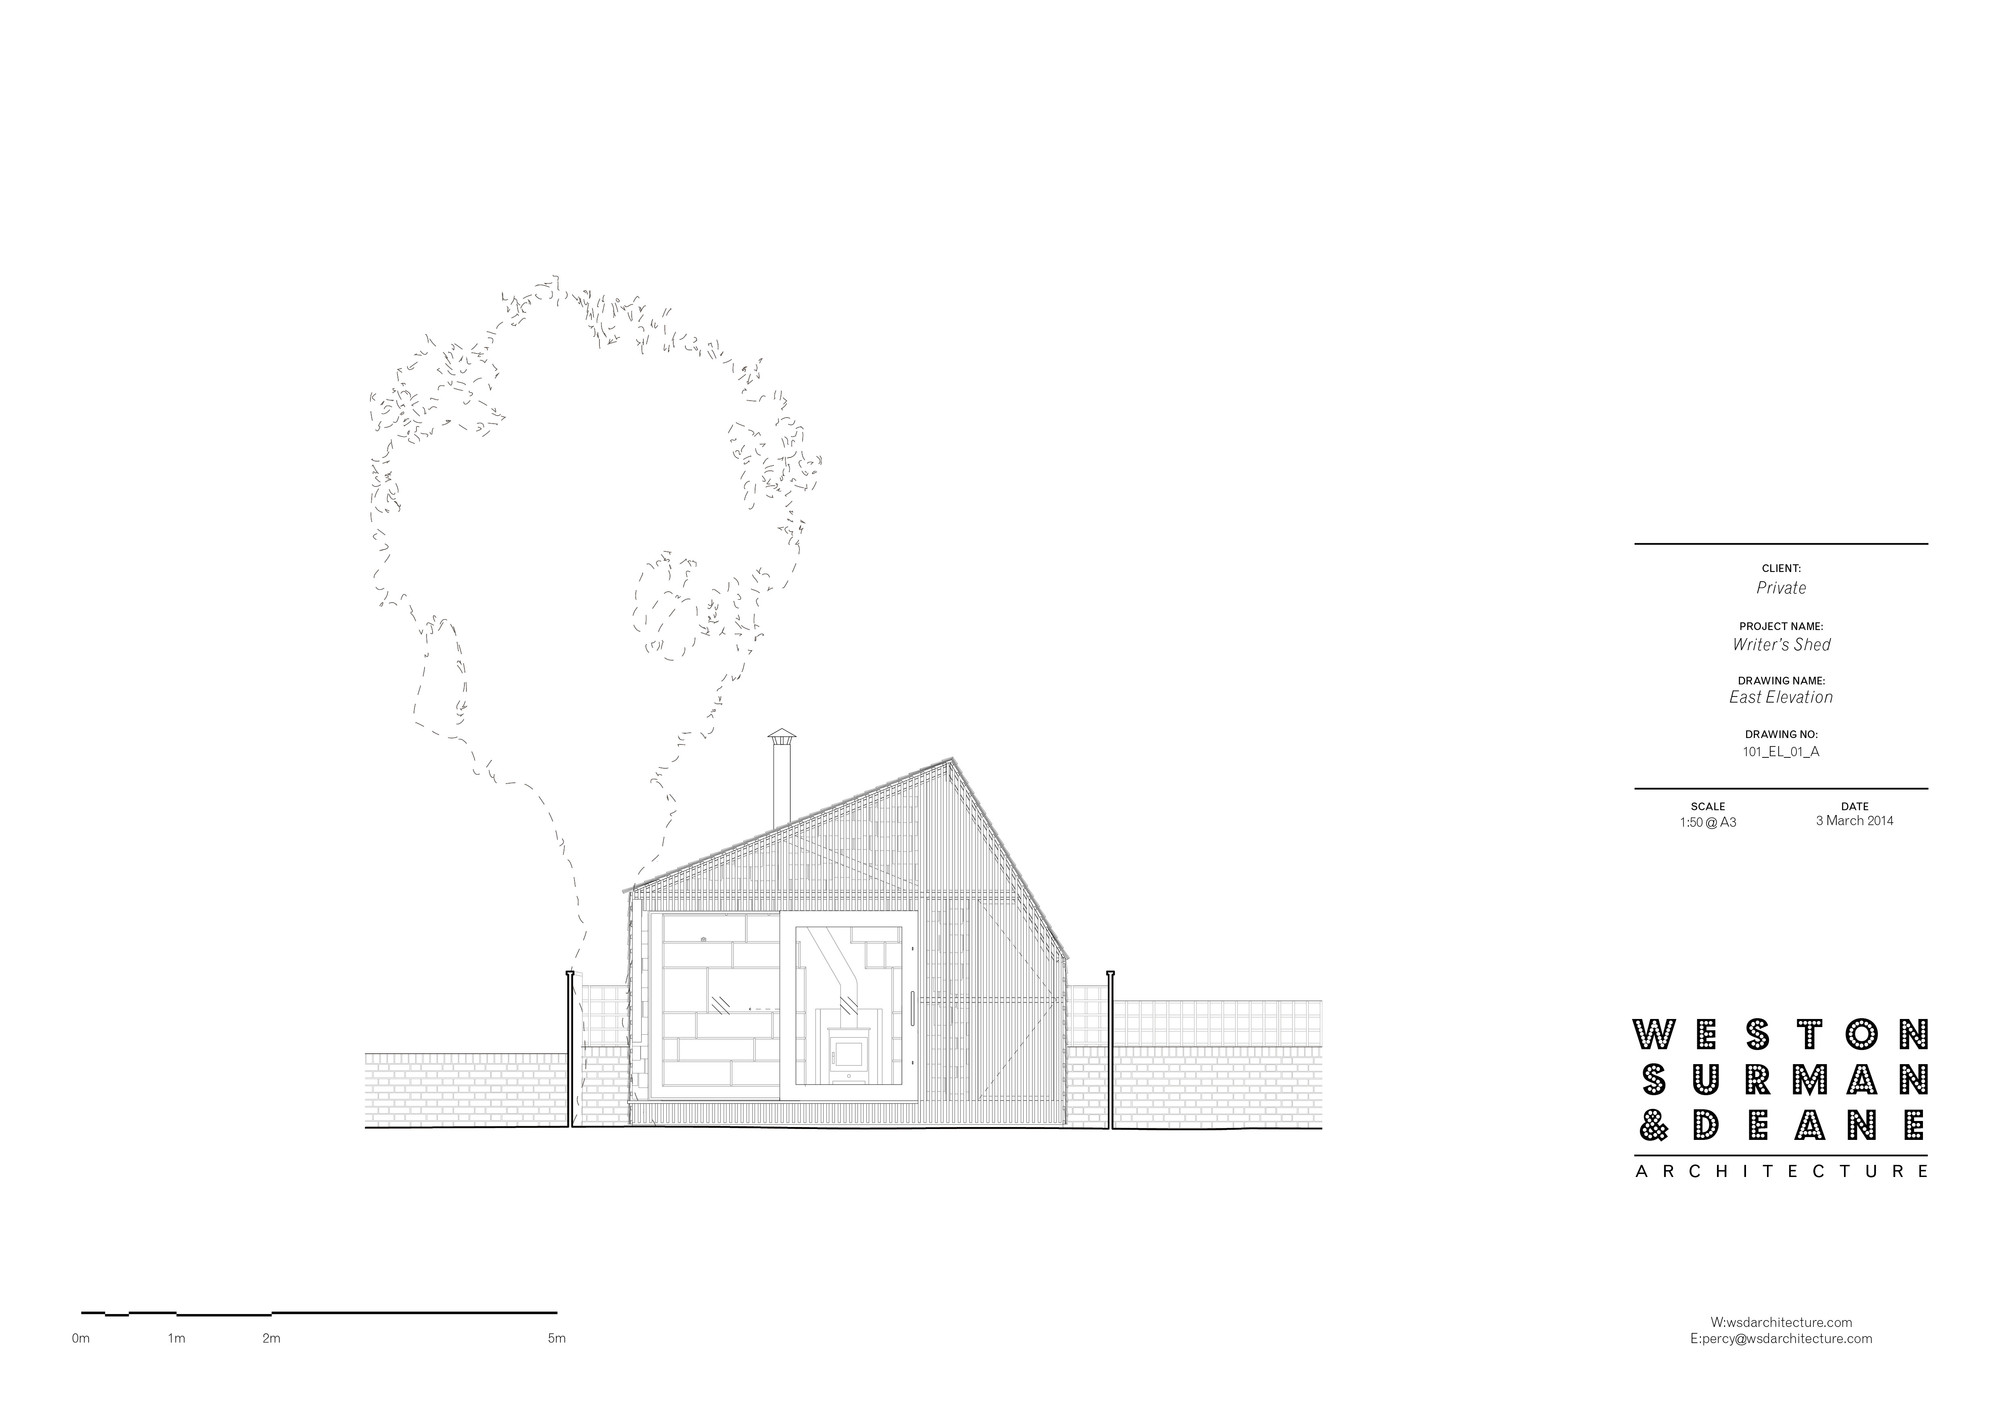 s archdaily 481414 petition entry moscow s Redman New Moon Trailer 140303 writer s shed3 1393872282